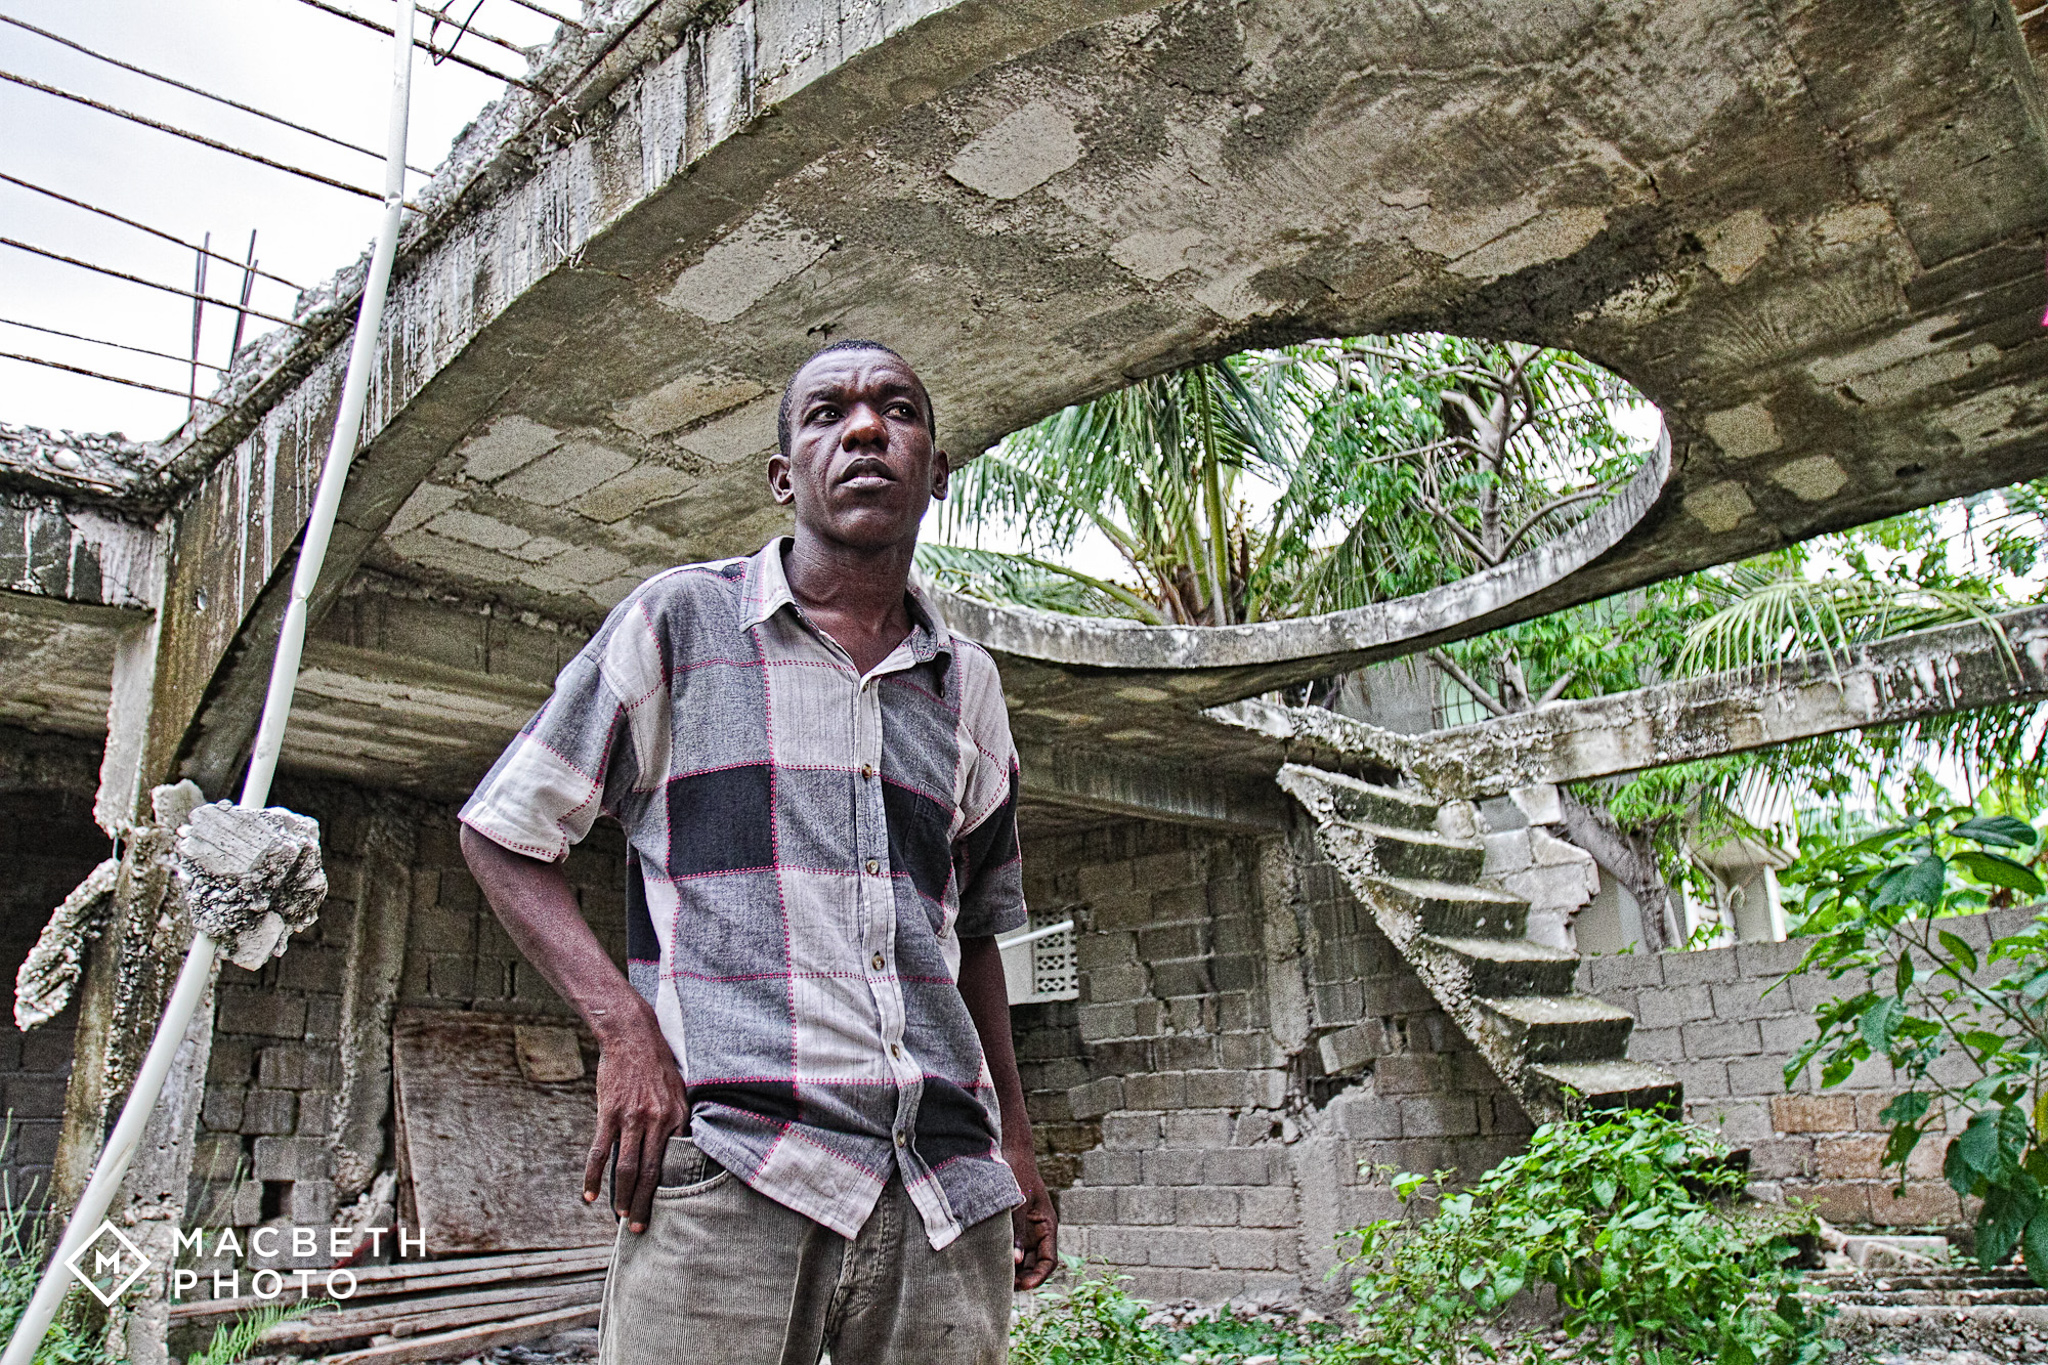 John Robert, earthquake survivor and REBUILD globally Supervisor and Designer. He is standing in what used to be his home prior to the earthquake.